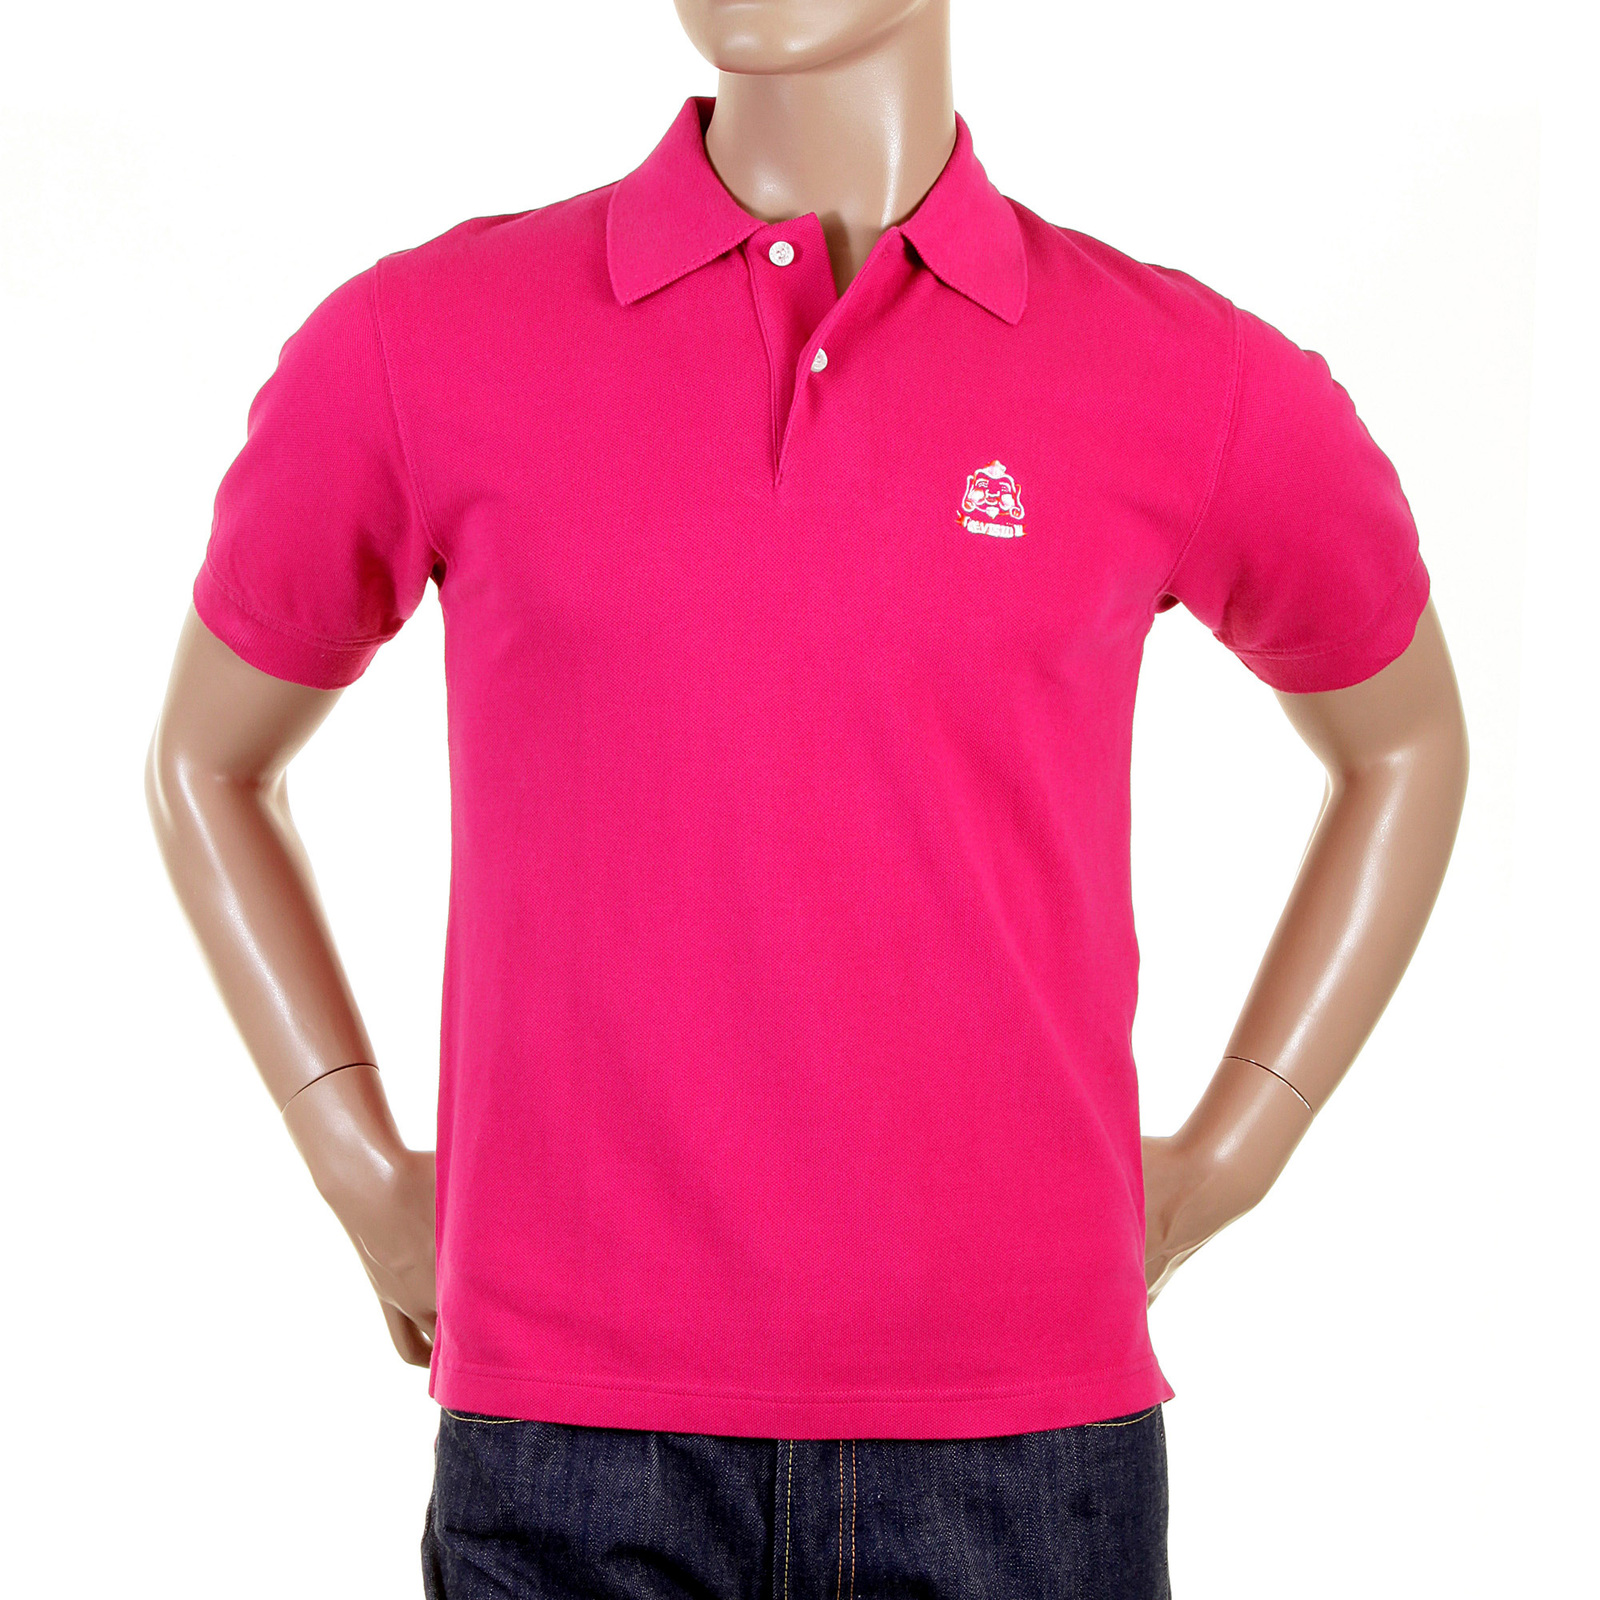 Wear the charm of the pink polo shirt by Evisu now!